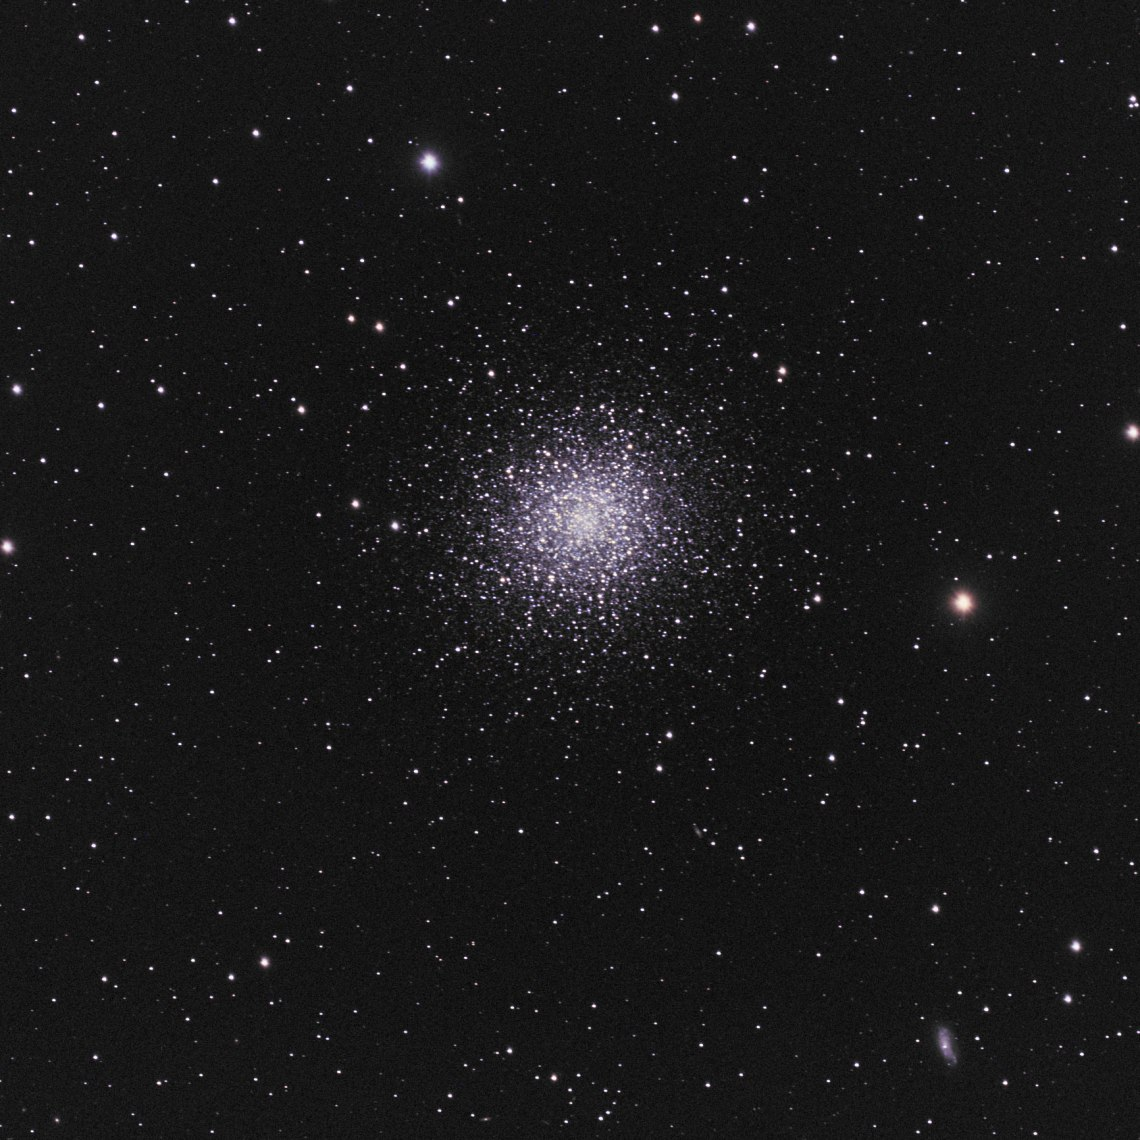 M13, the Great Globular Cluster in Hercules Credit: Mike Barrett